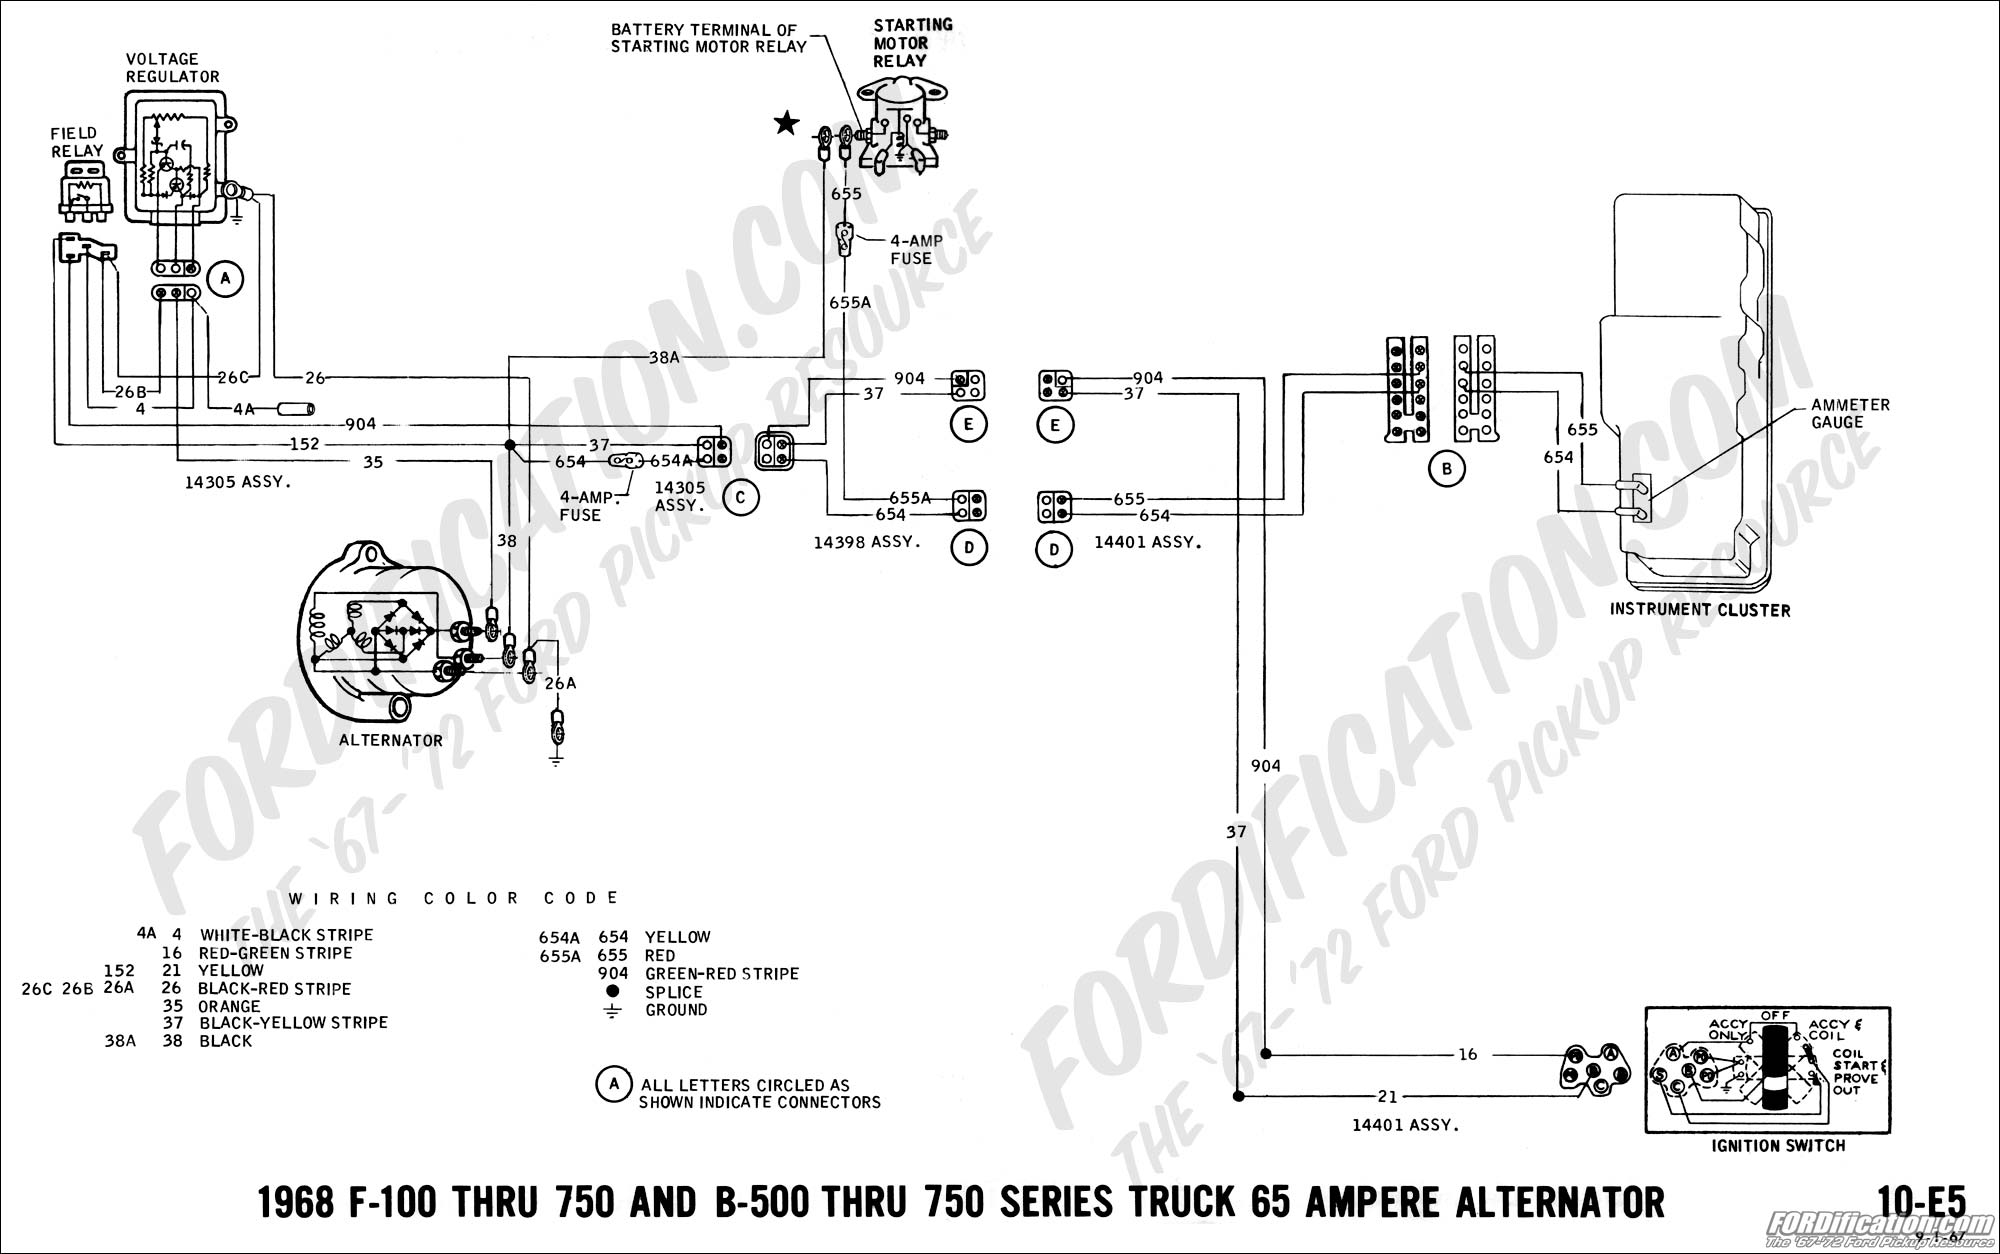 68 07 ford truck technical drawings and schematics section h wiring 1994 ford f150 alternator wiring harness at soozxer.org